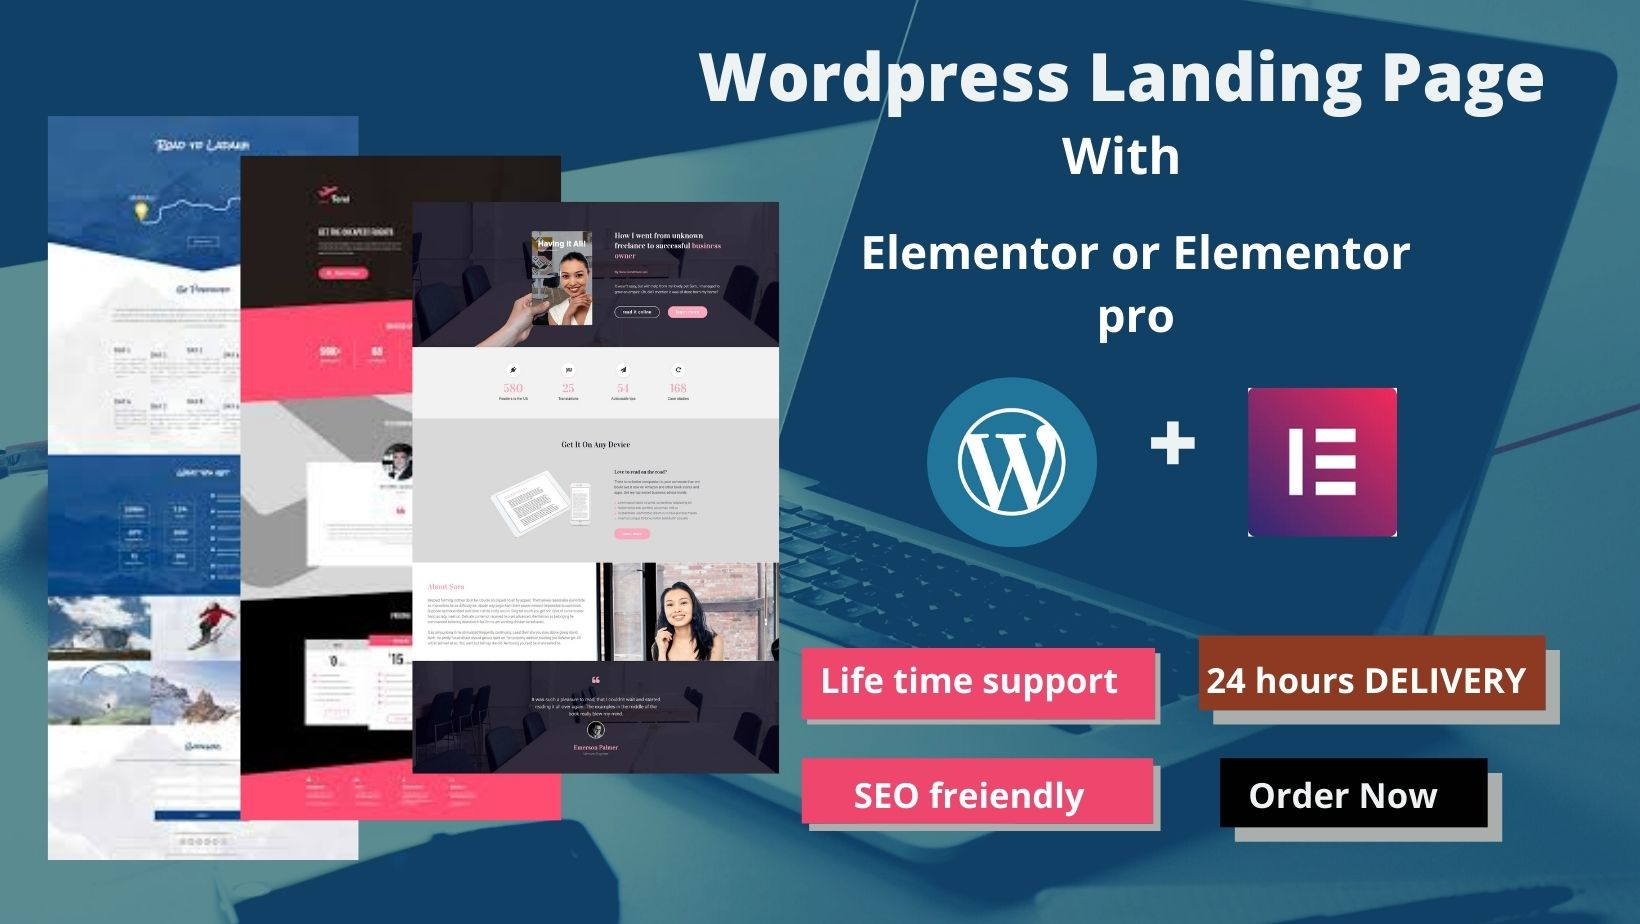 I will design wordpress landing page or blog with Elementor or Elementor pro